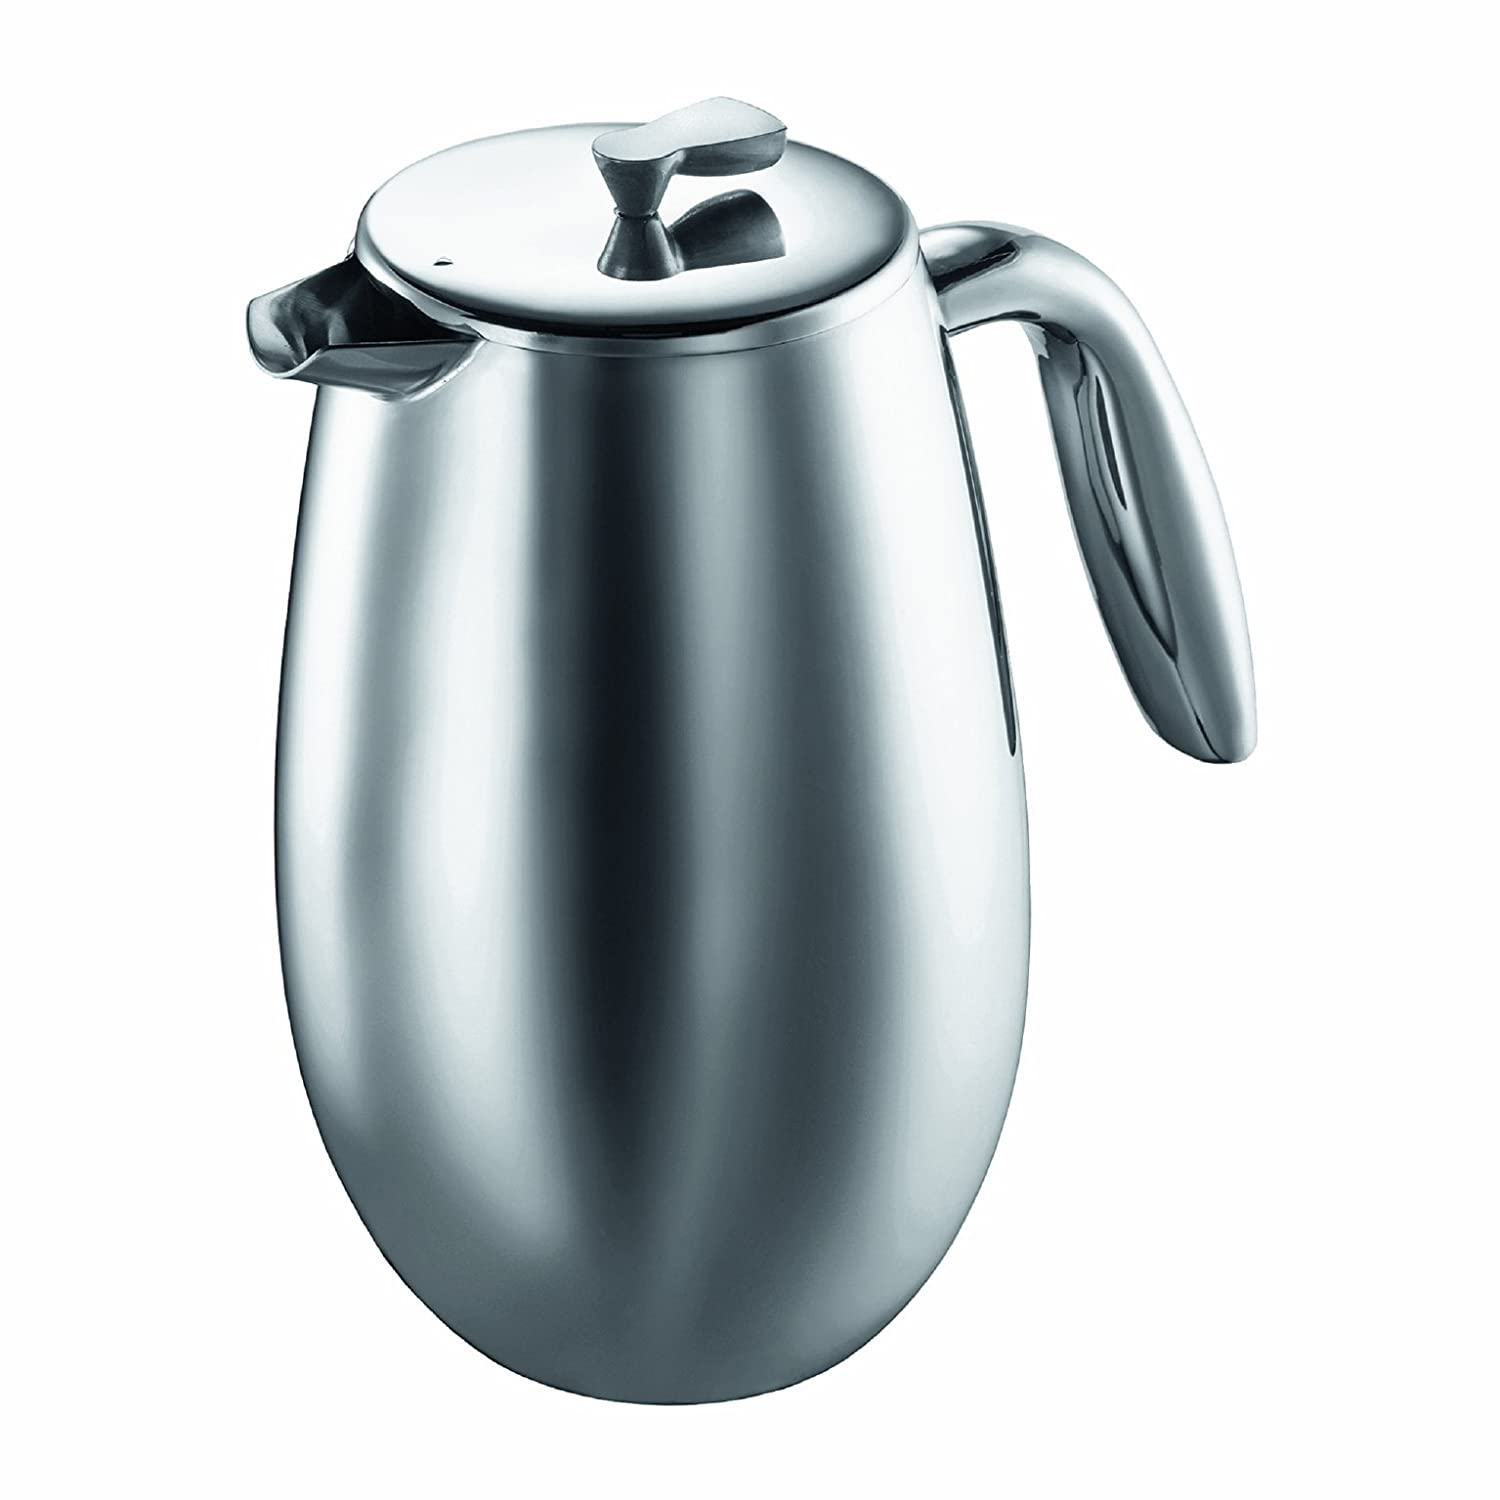 The Bodum Columbia 8-Cup Stainless-Steel Thermal Press Pot